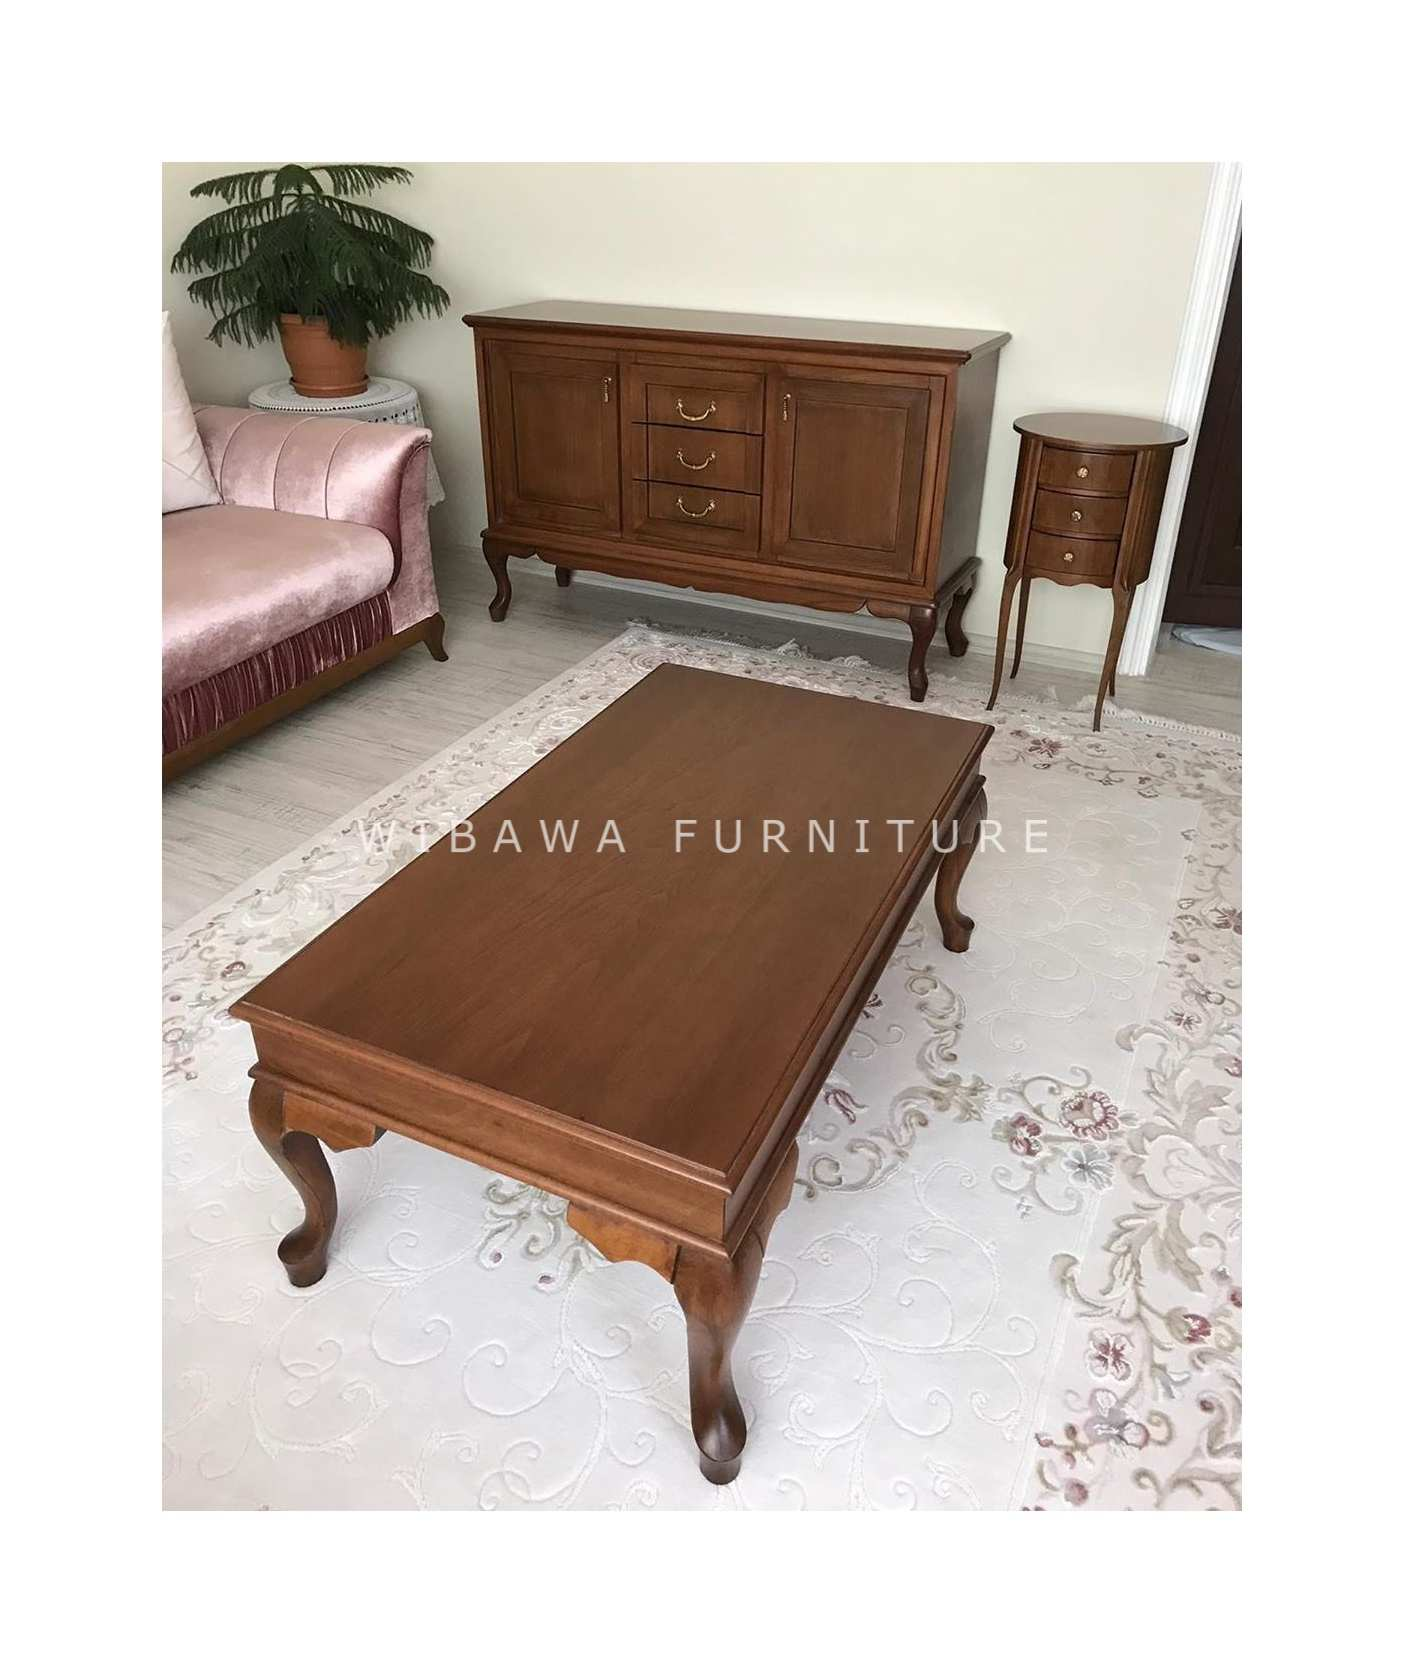 Harga Meja Tamu Coffe Table Minimalis Kayu Jati Furniture